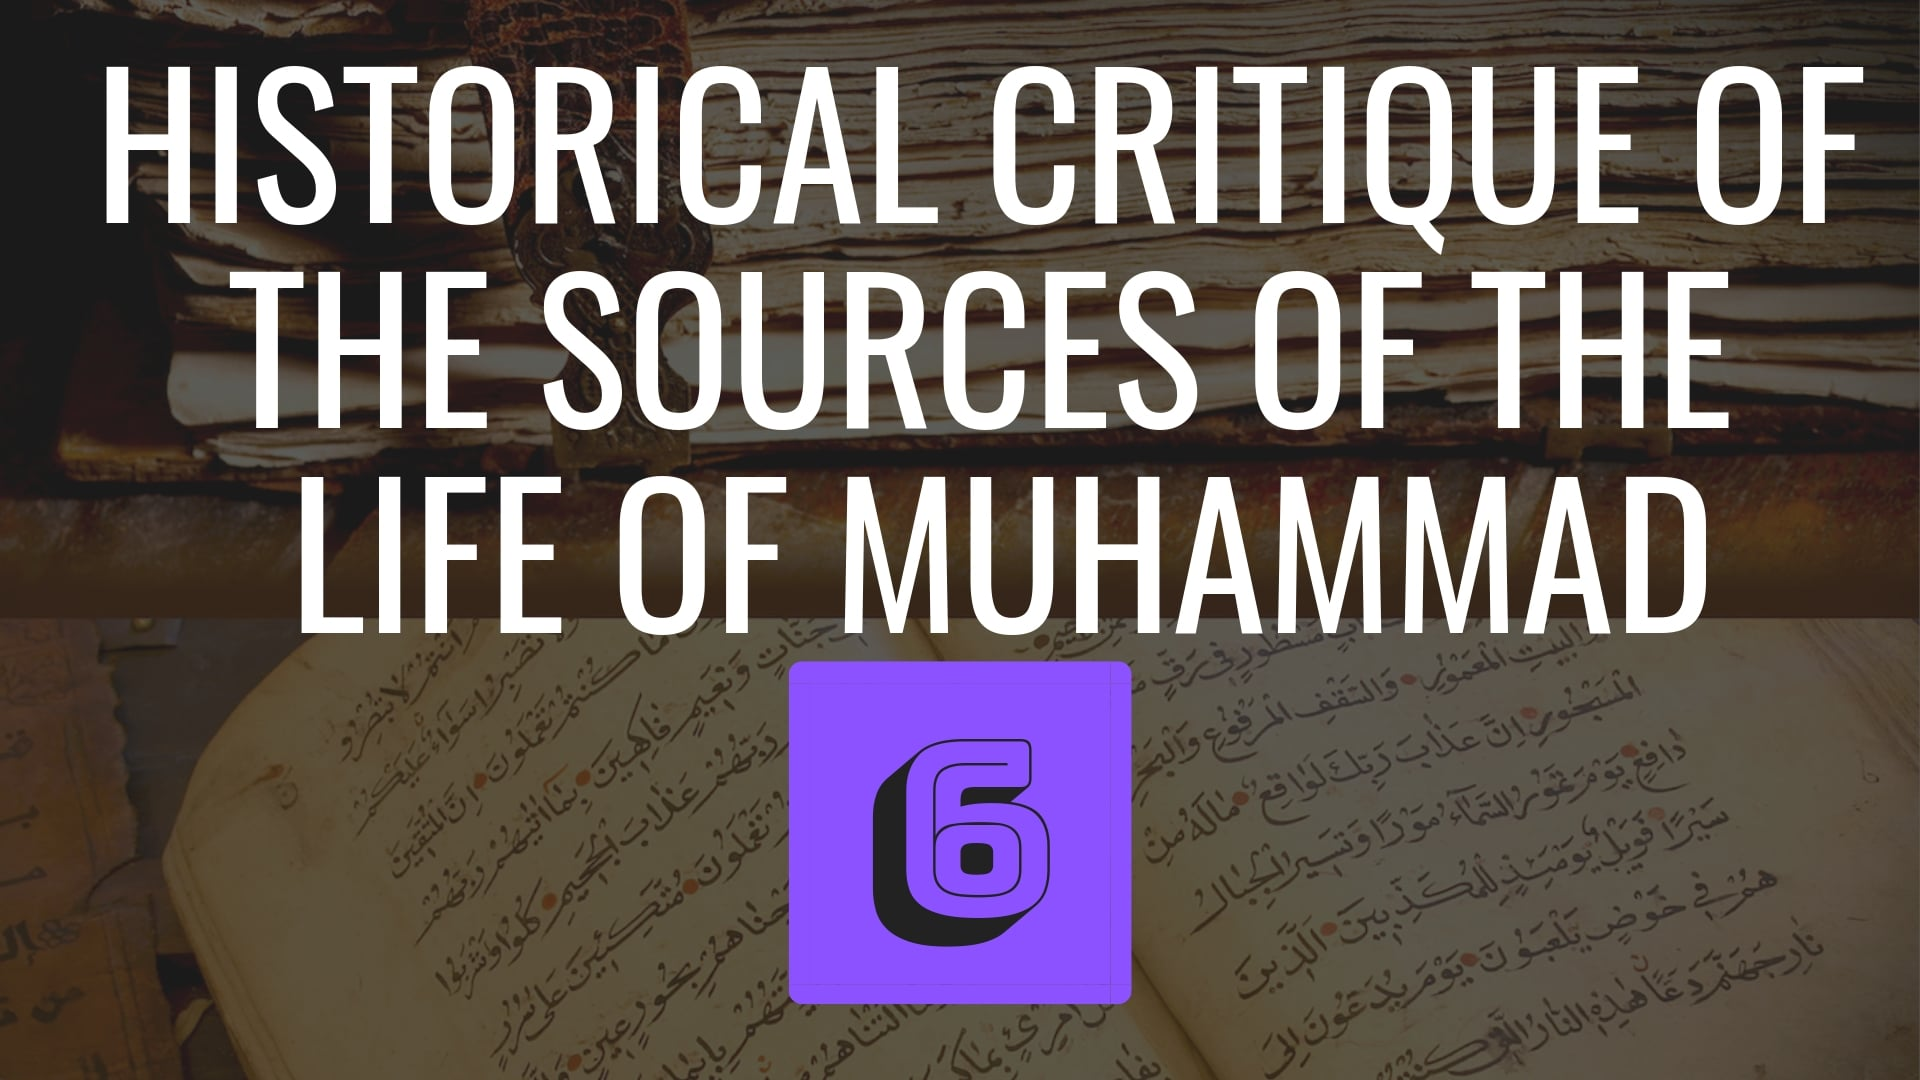 Historical Critique of the Sources for the Life of Muhammad